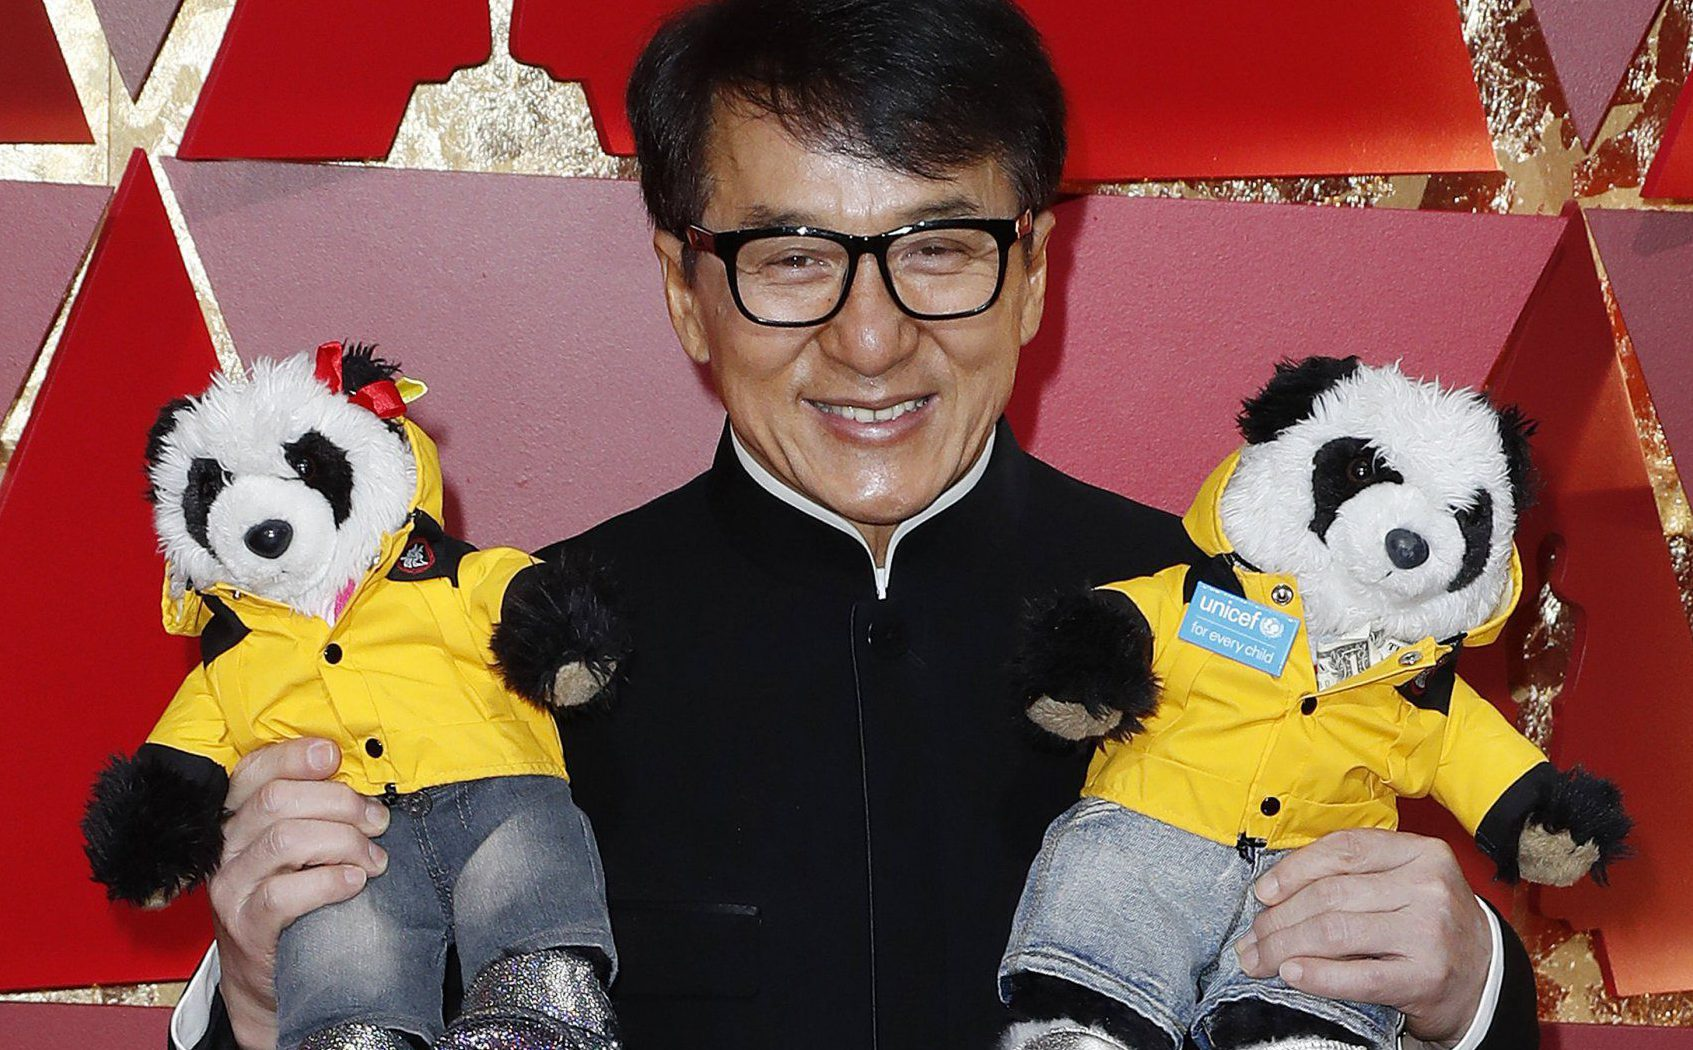 Jackie Chan brought two cuddly panda toys on to the Oscars red carpet